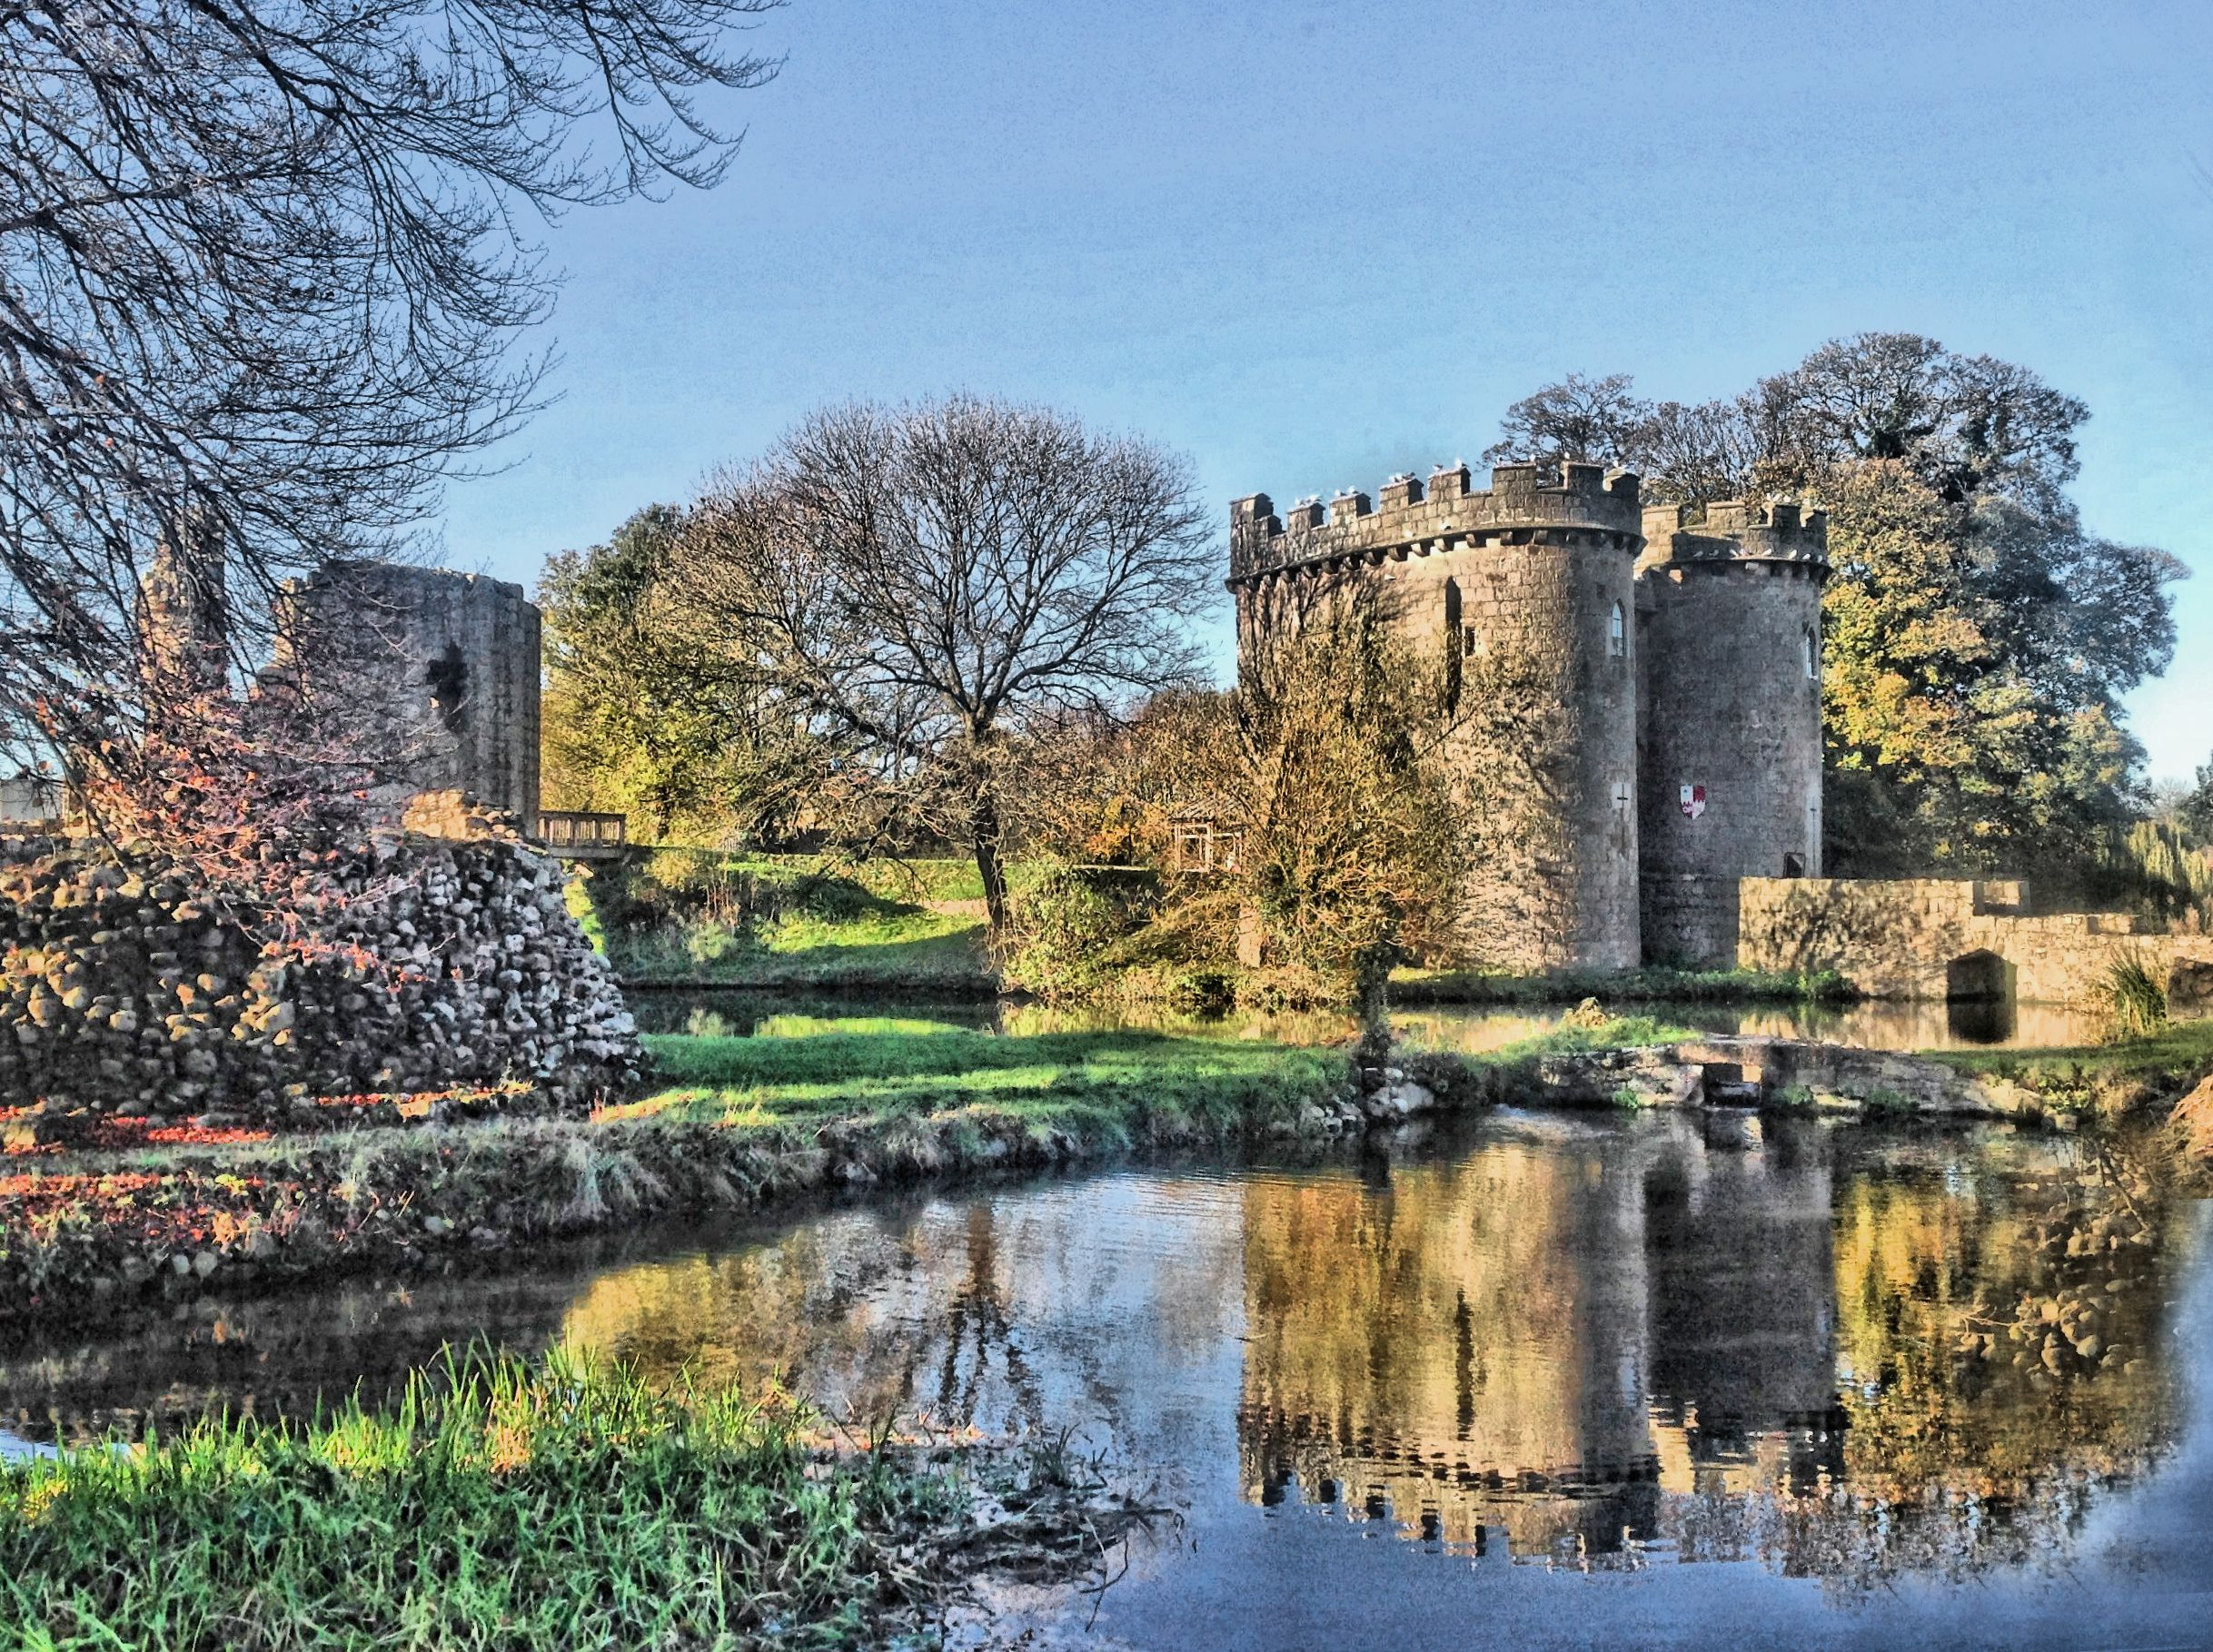 Whittington Castle, Whittington, near Oswestry